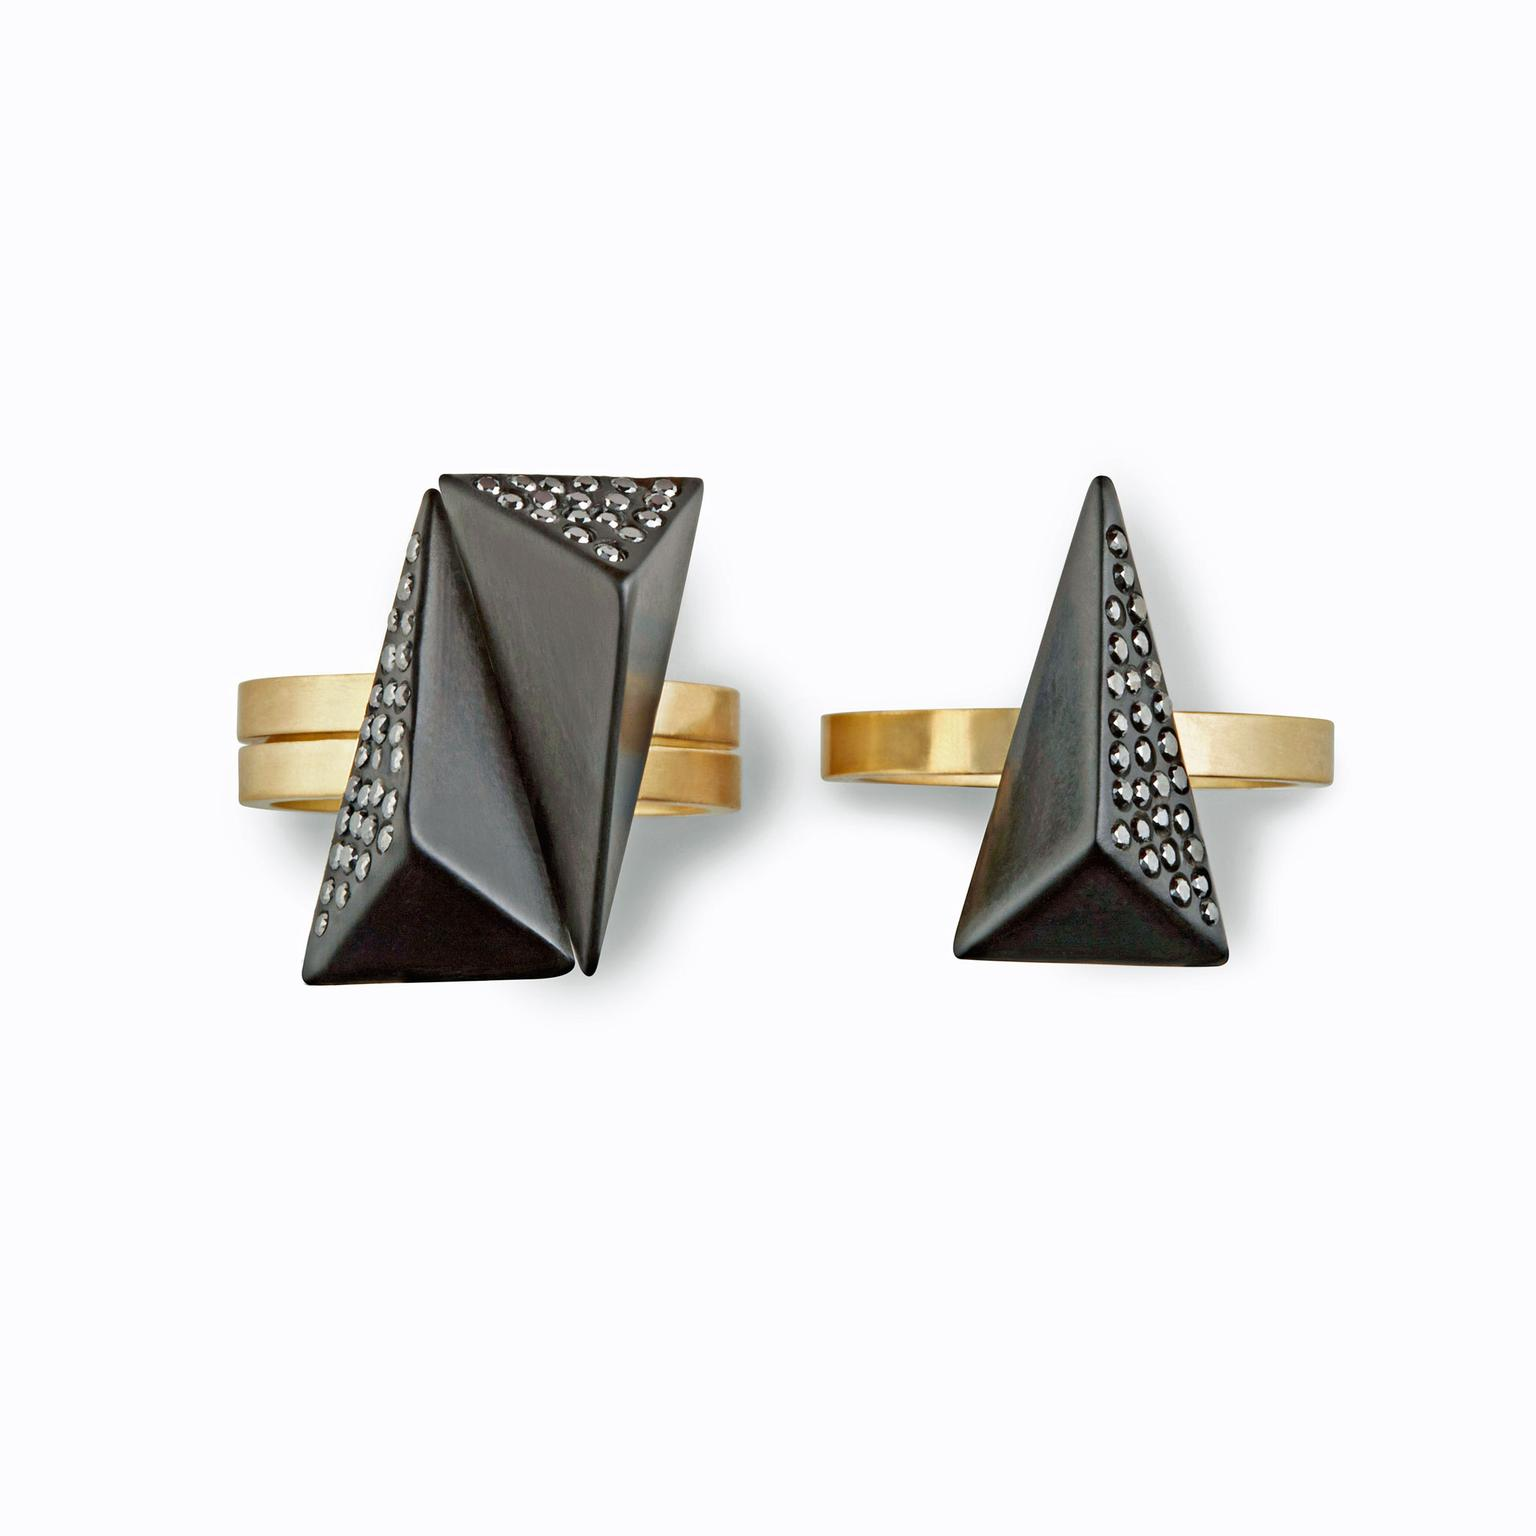 Jacqueline Cullen rings in Whitby Jet and black diamonds